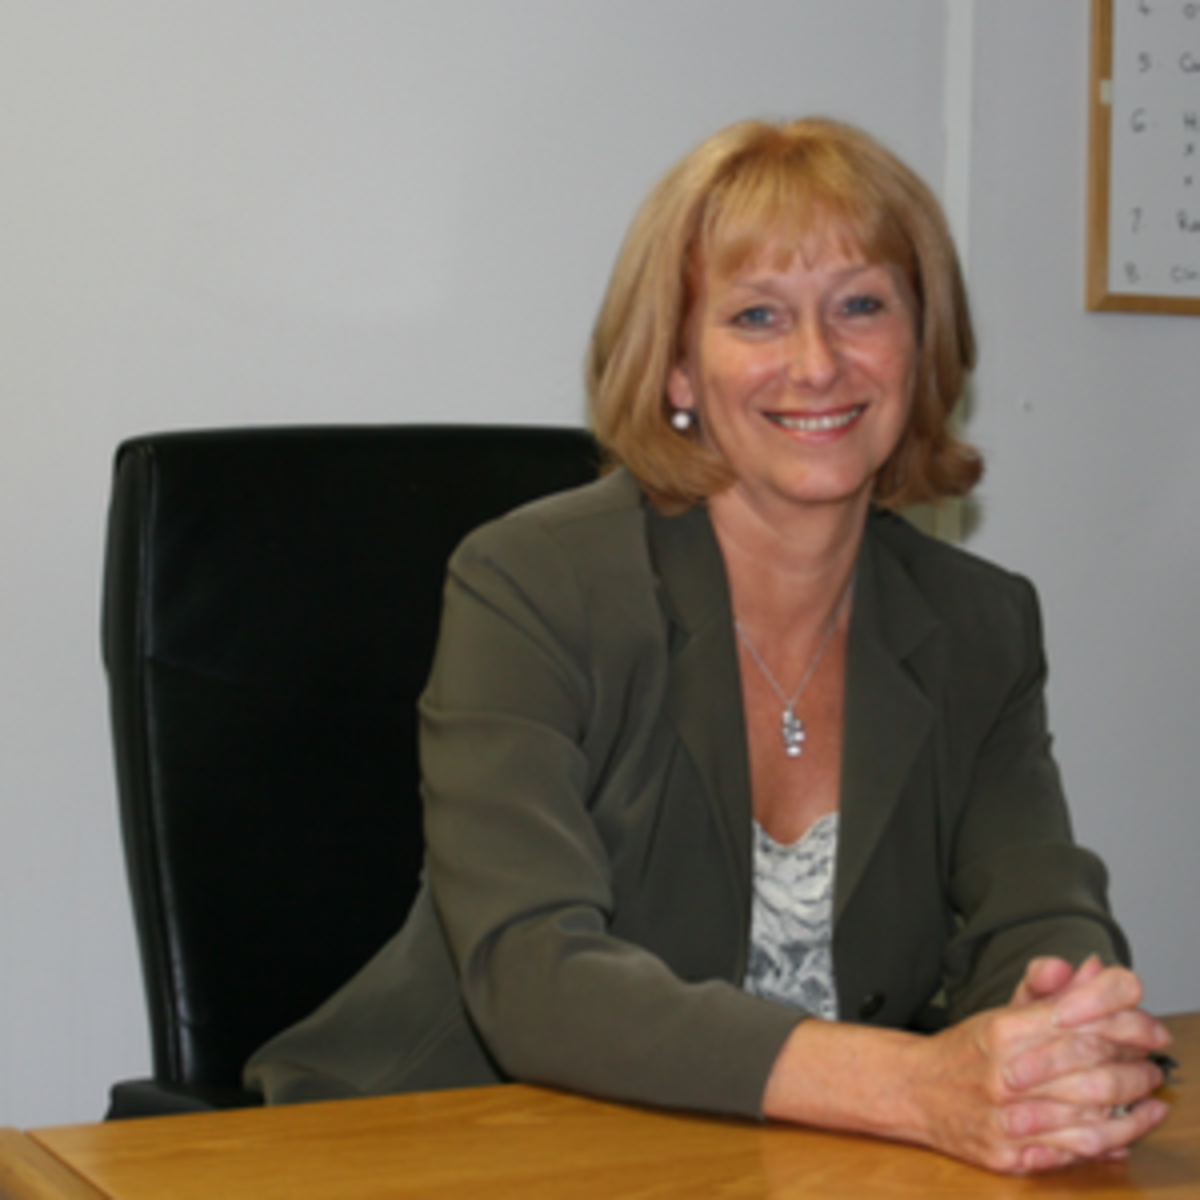 Gill Little, Clinical Services Director